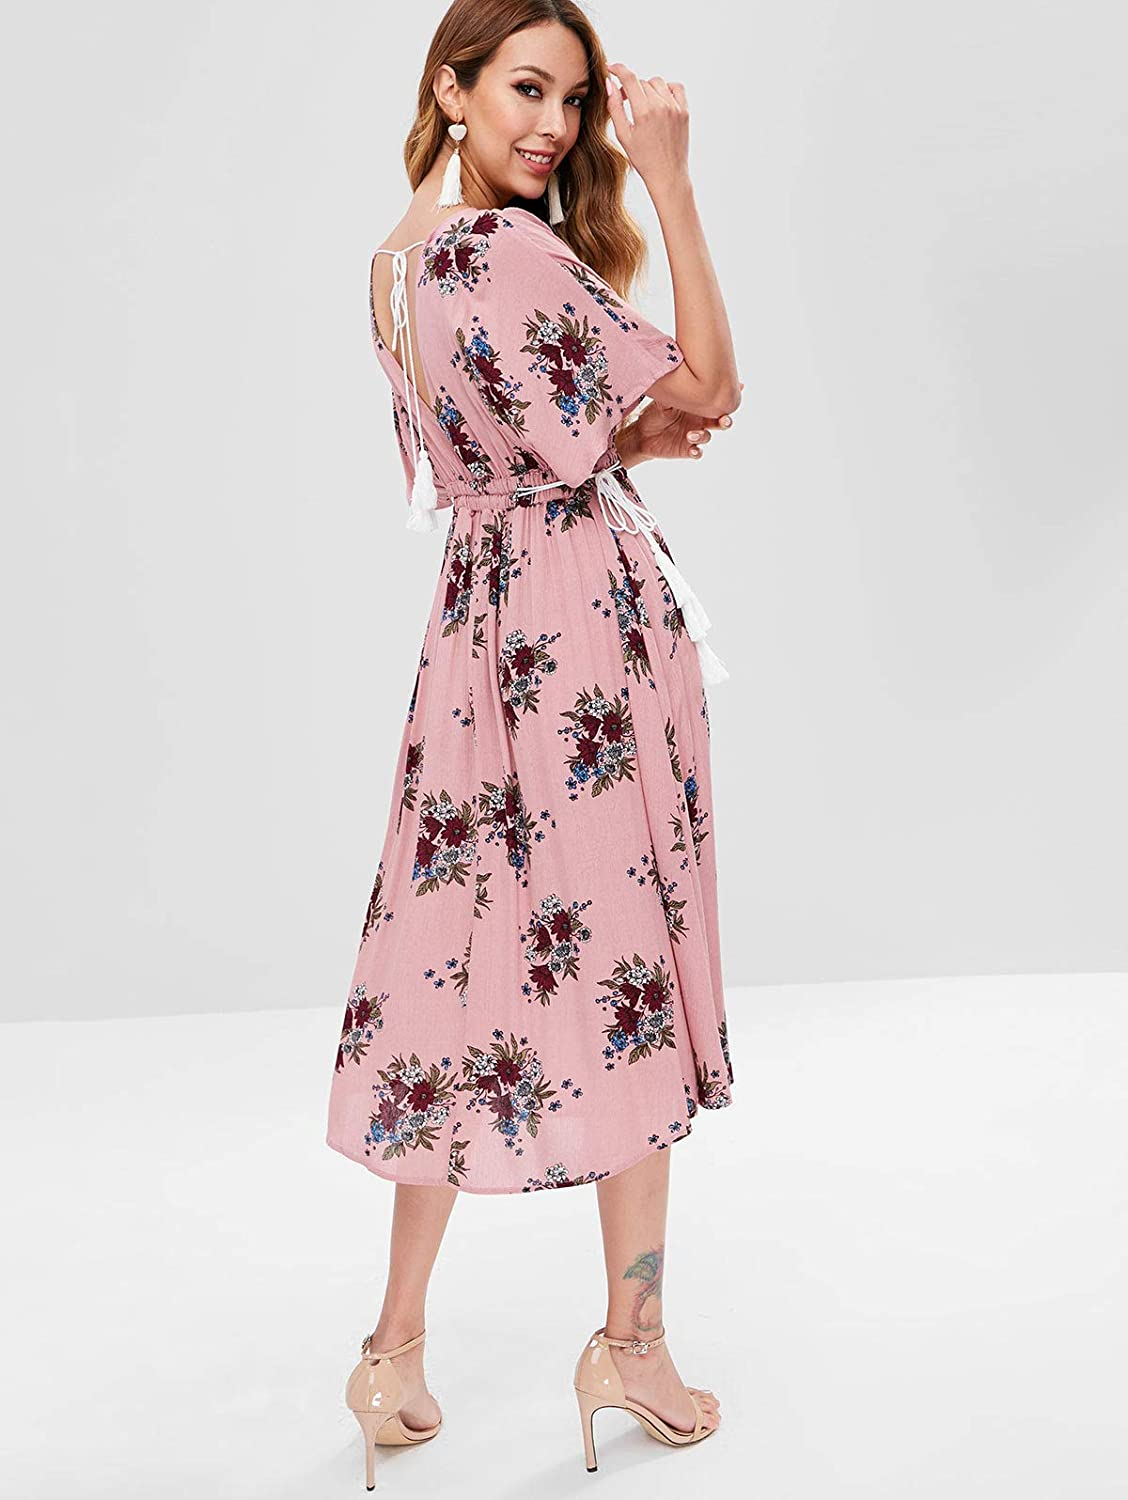 cdf577fd420 ZAFUL Women s Sexy Plunging V Neck Batwing Floral Cut Out Maxi Dress at  Amazon Women s Clothing store